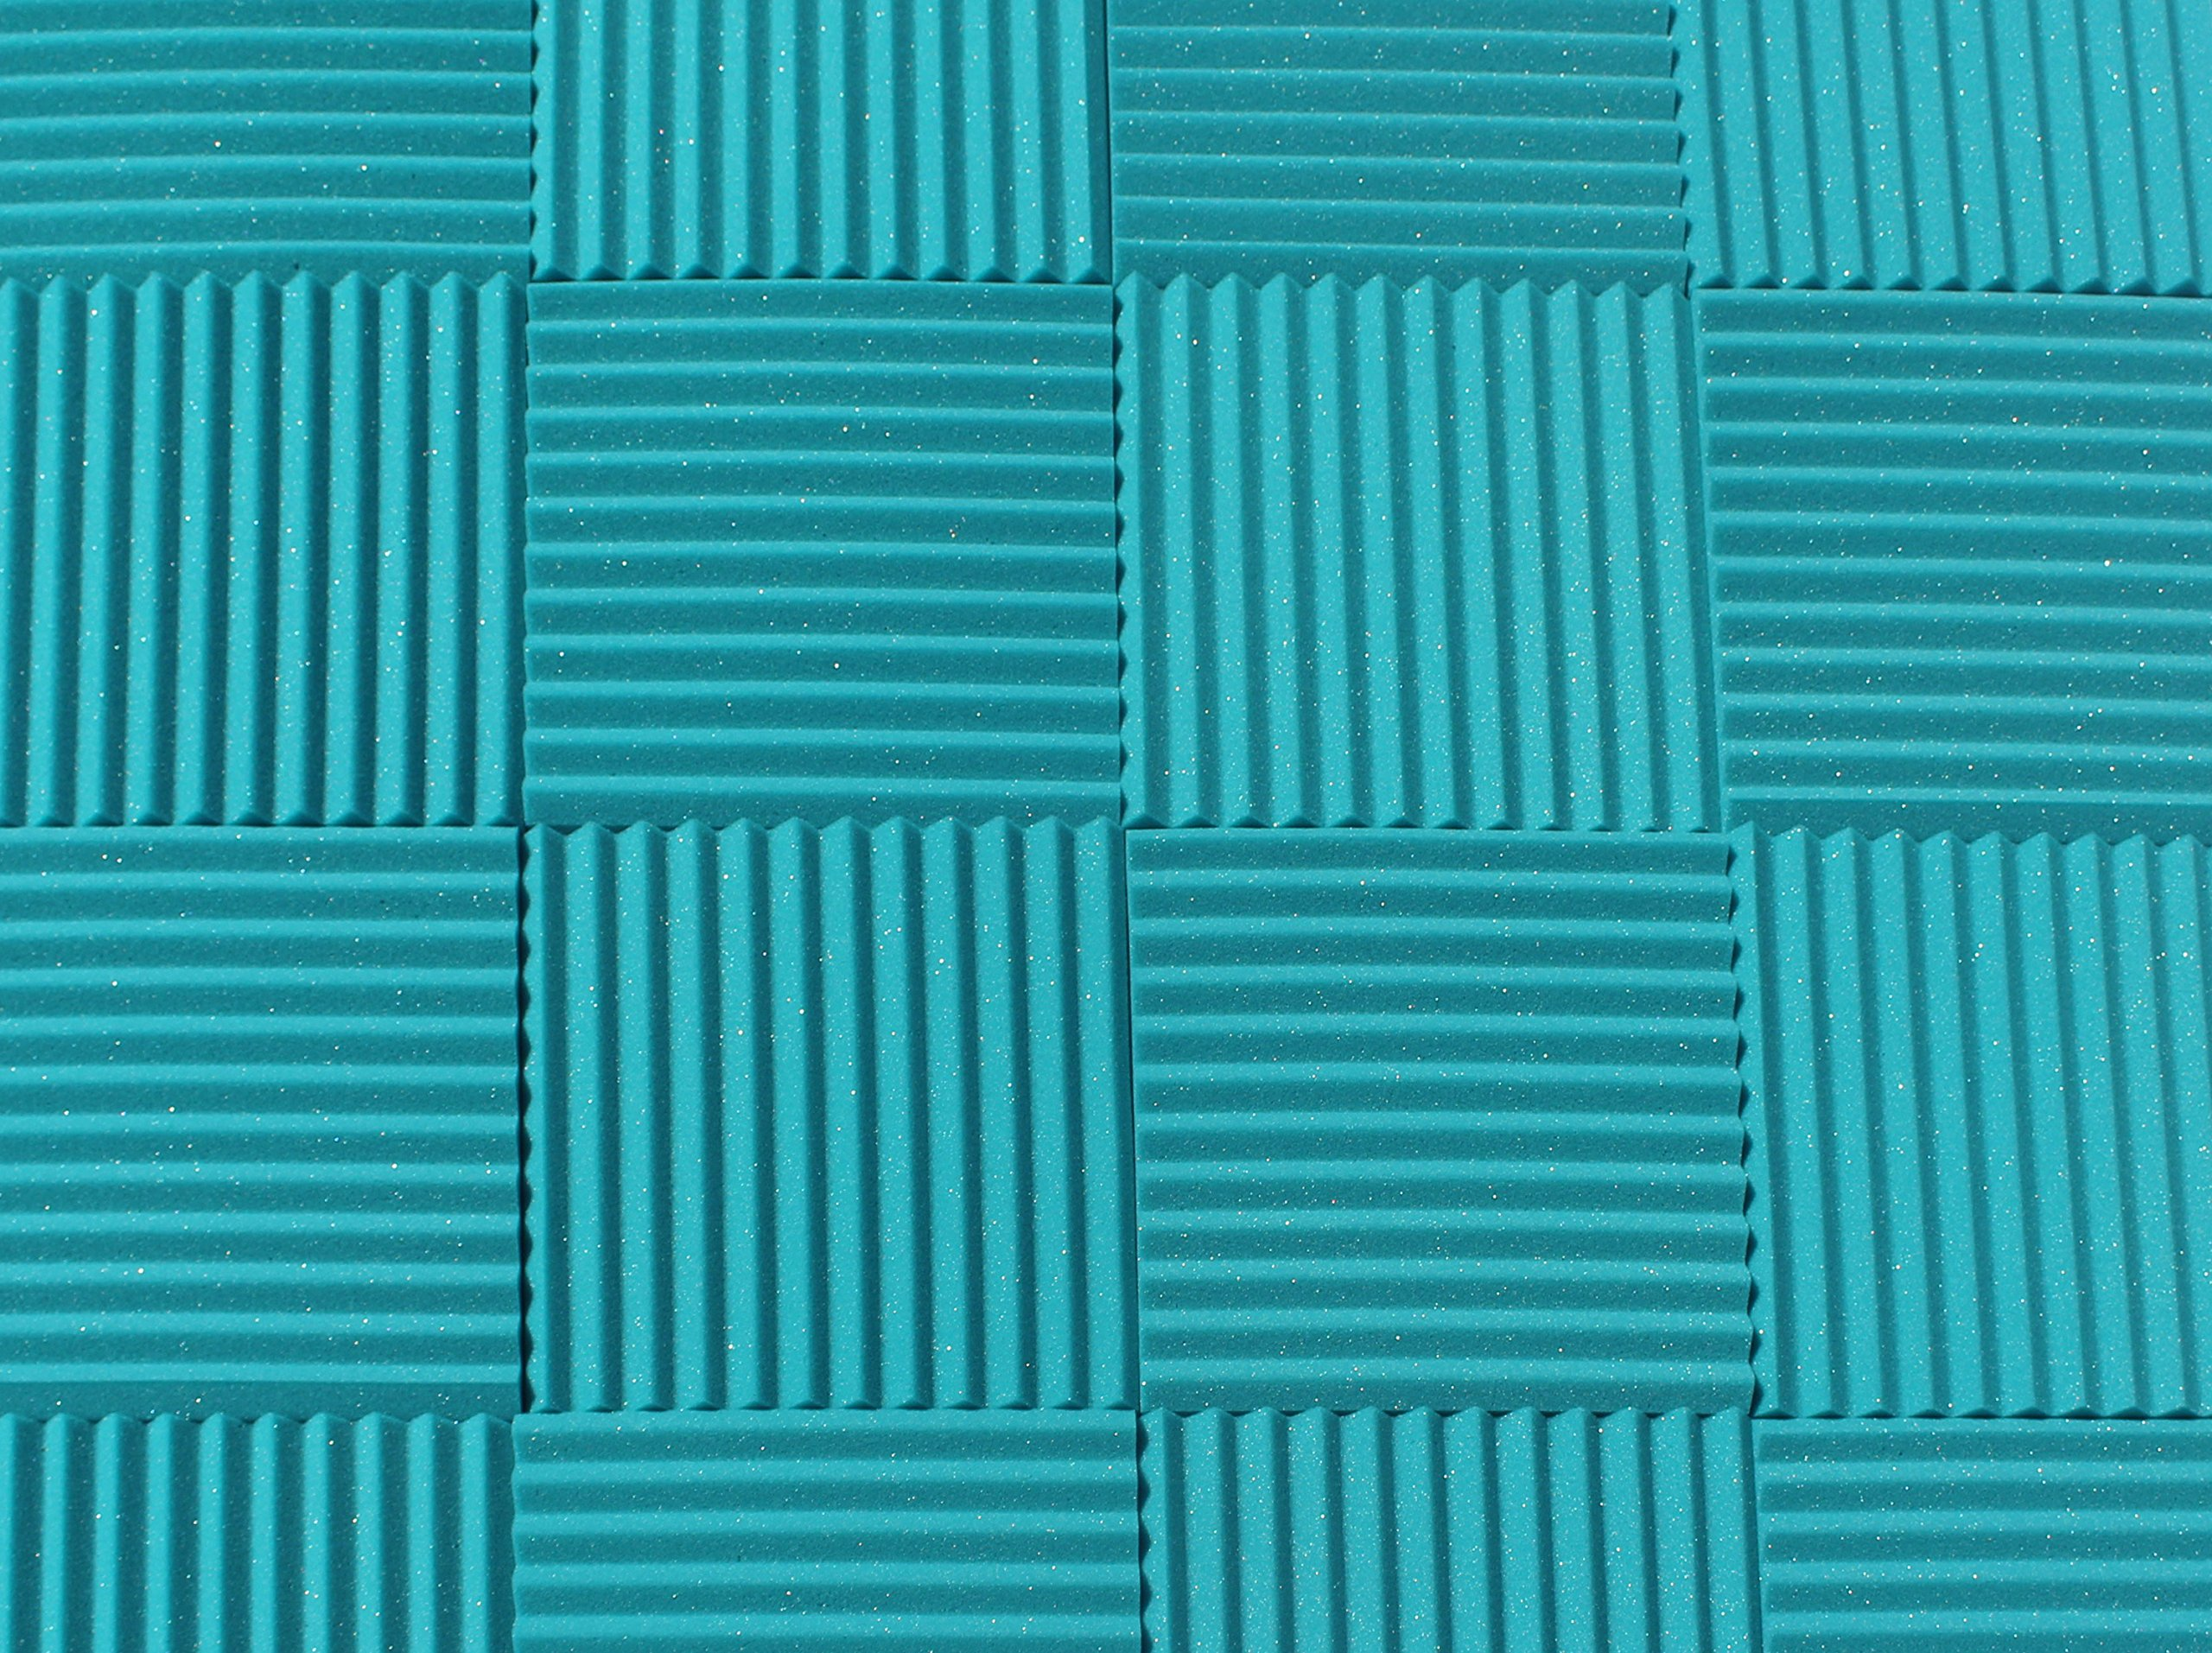 """Soundproofing Acoustic Studio Foam - Teal Color - Wedge Style Panels 12""""x12""""x1"""" Tiles - 6 Pack by SoundAssured"""